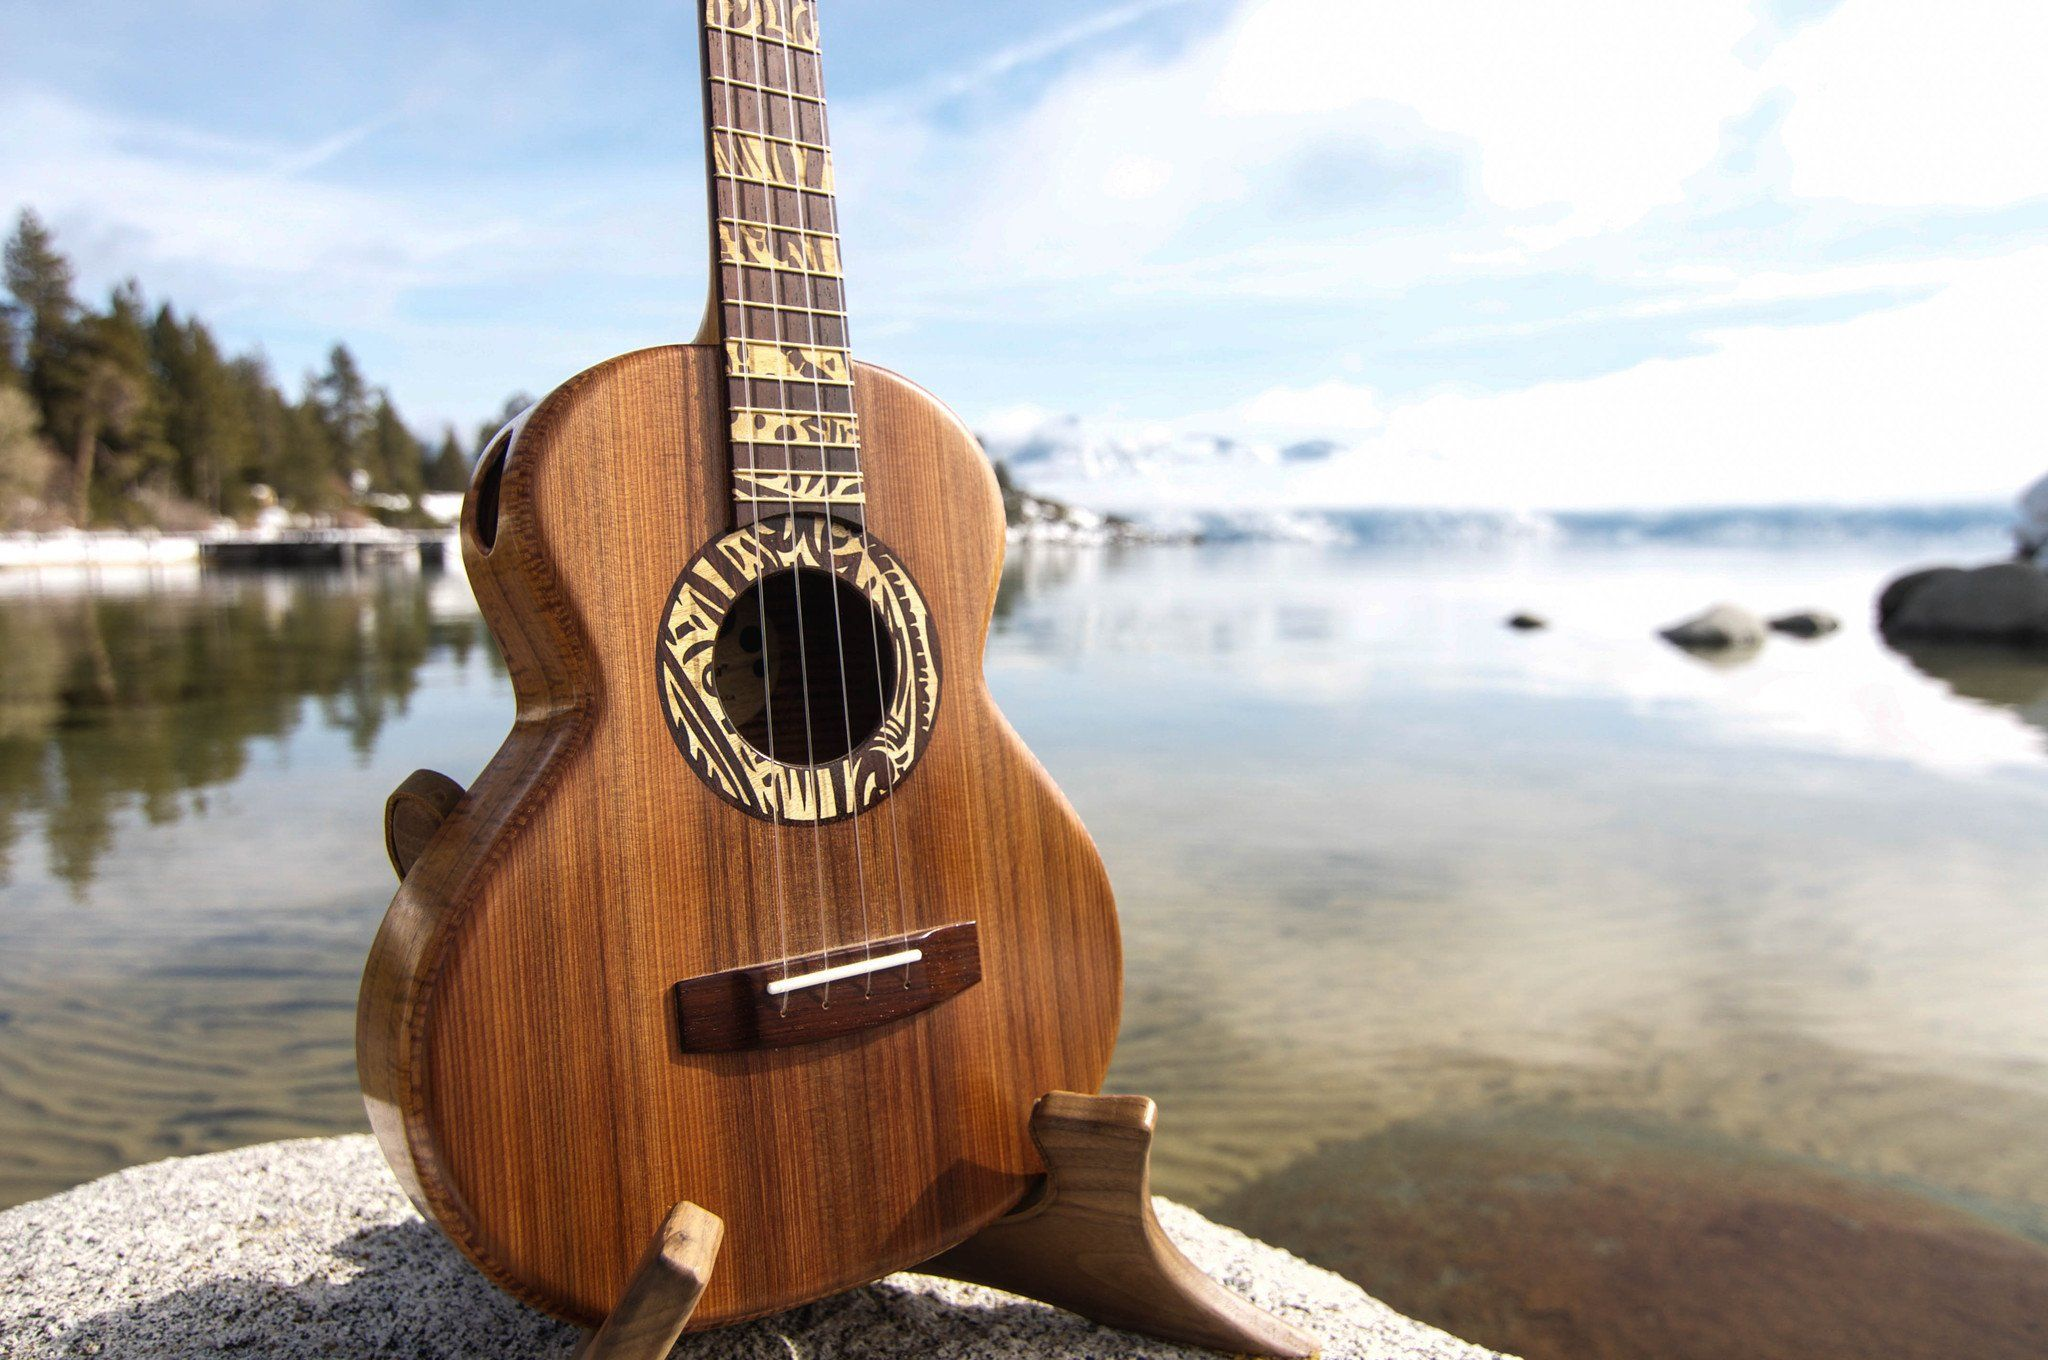 This is a great website/app for picking up ukulele. They